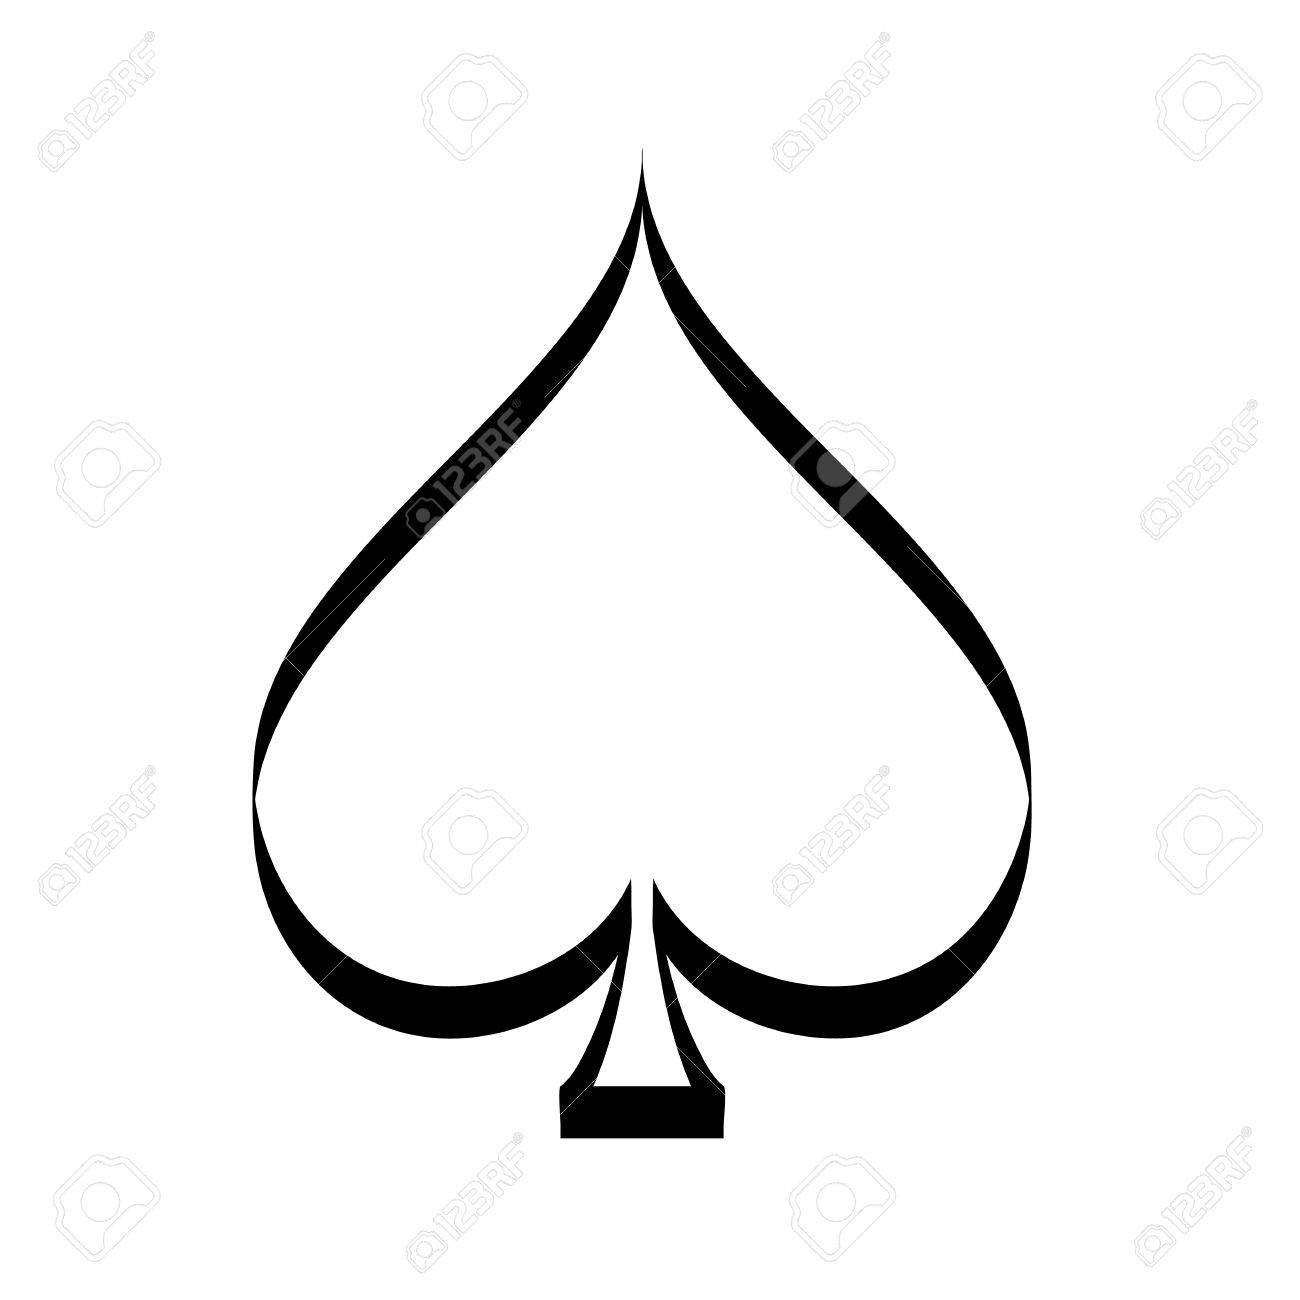 spade card photo  Vector playing card spade suit flat icon for apps and websites,..